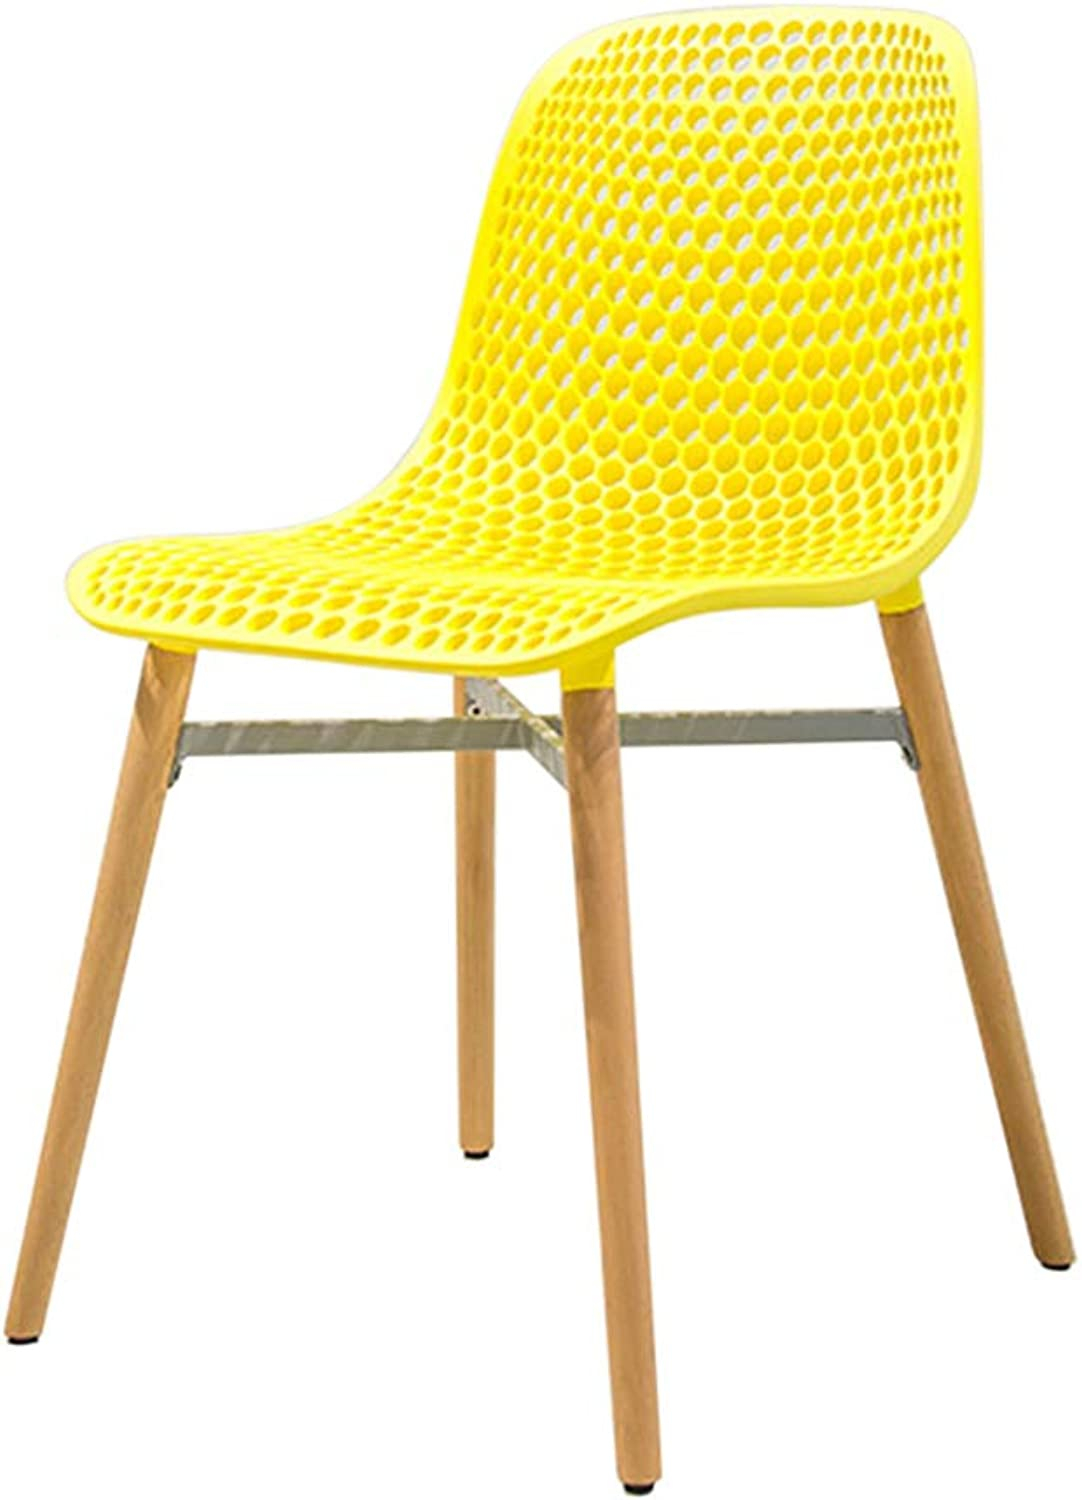 Creative Lounge Chair,Nordic Solid Wood Dining Chair, PP Plastic Makeup Stool,Strong Bearing Capacity,for Restaurant Pub Cafe Living Room Bedroom